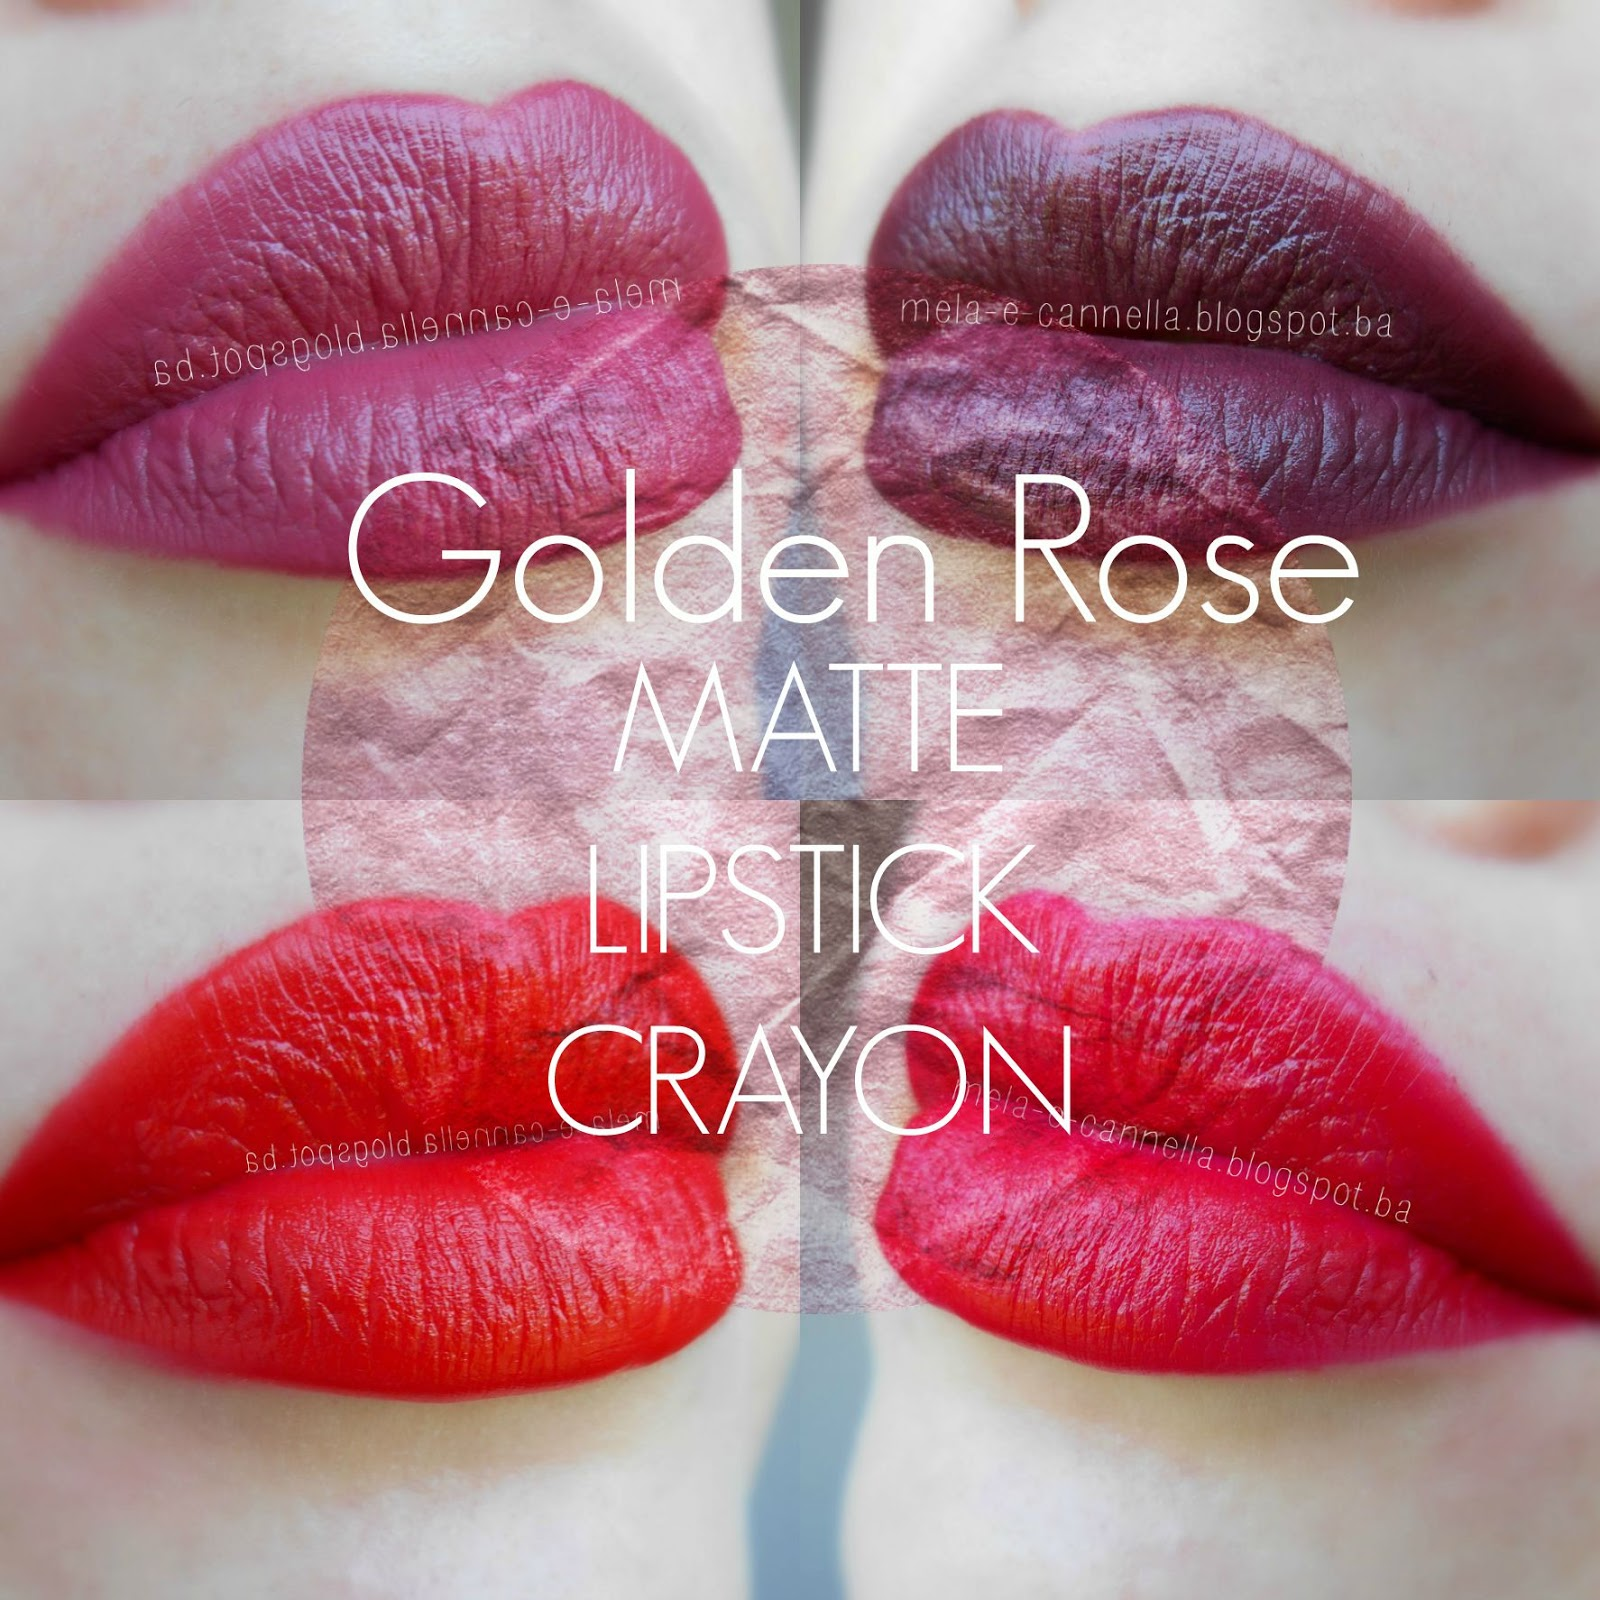 how to make gold lipstick